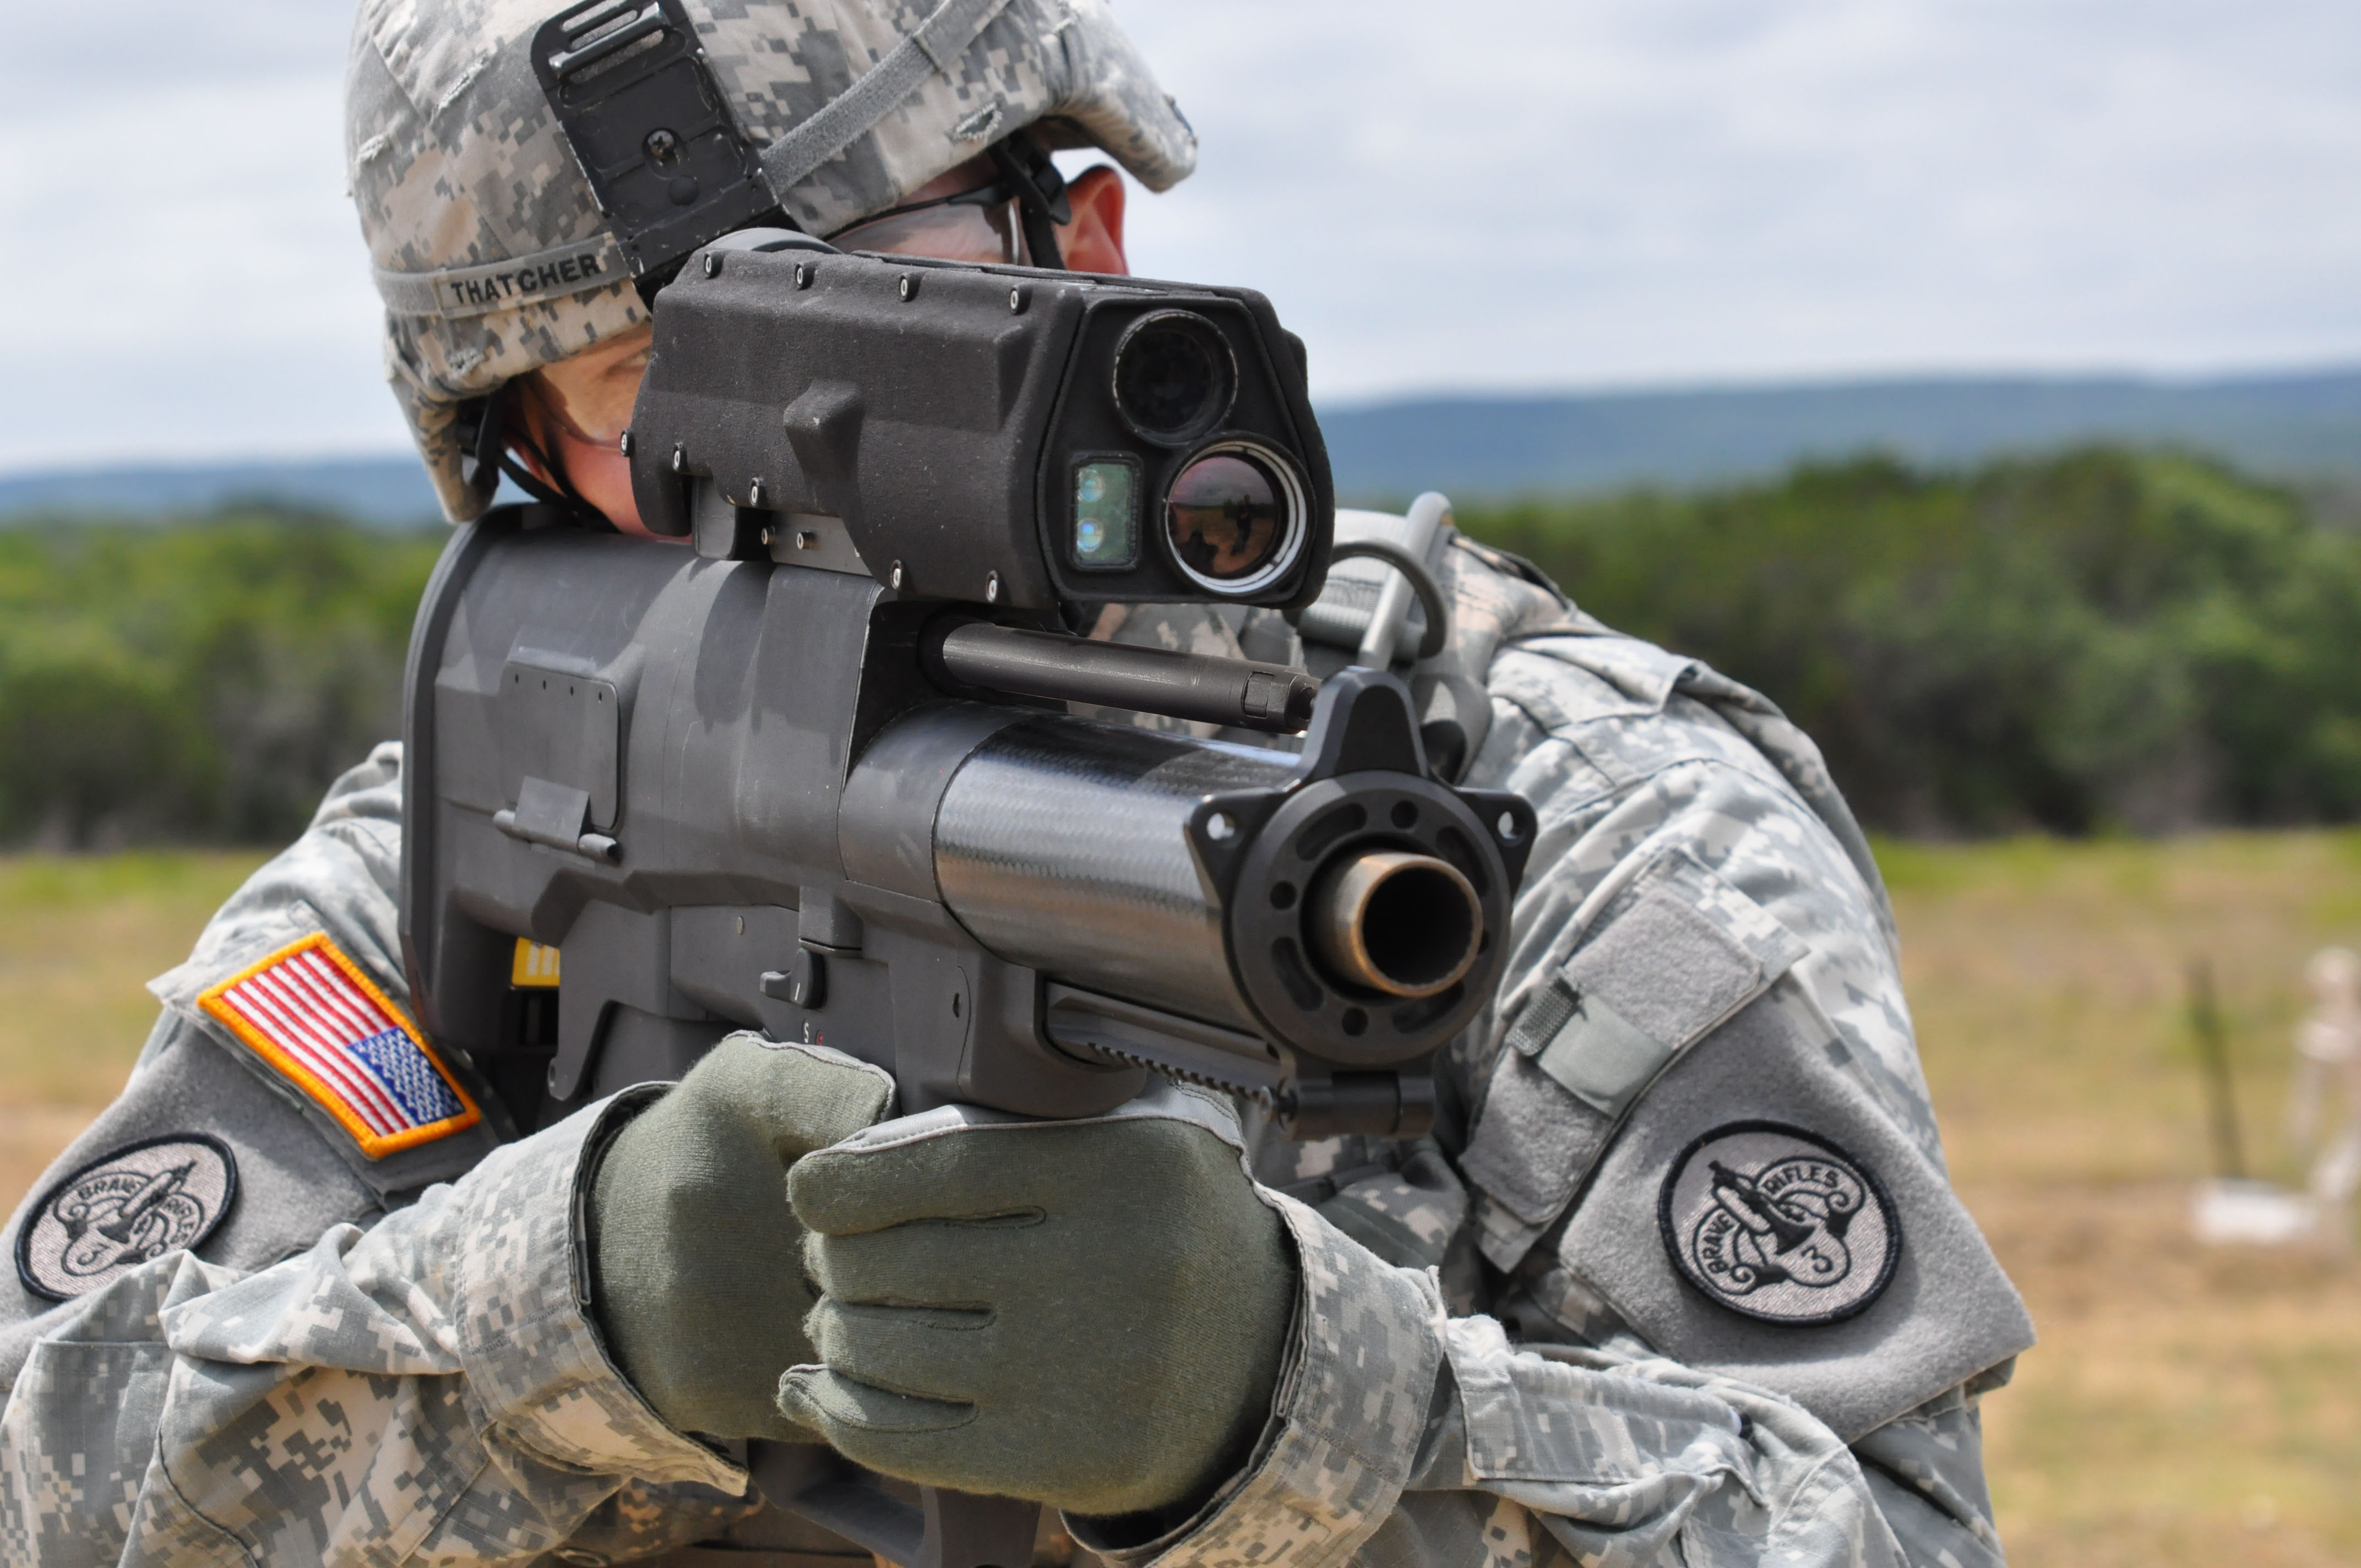 File:flickr - the u.s. army - testing the new xm-25 weapon system